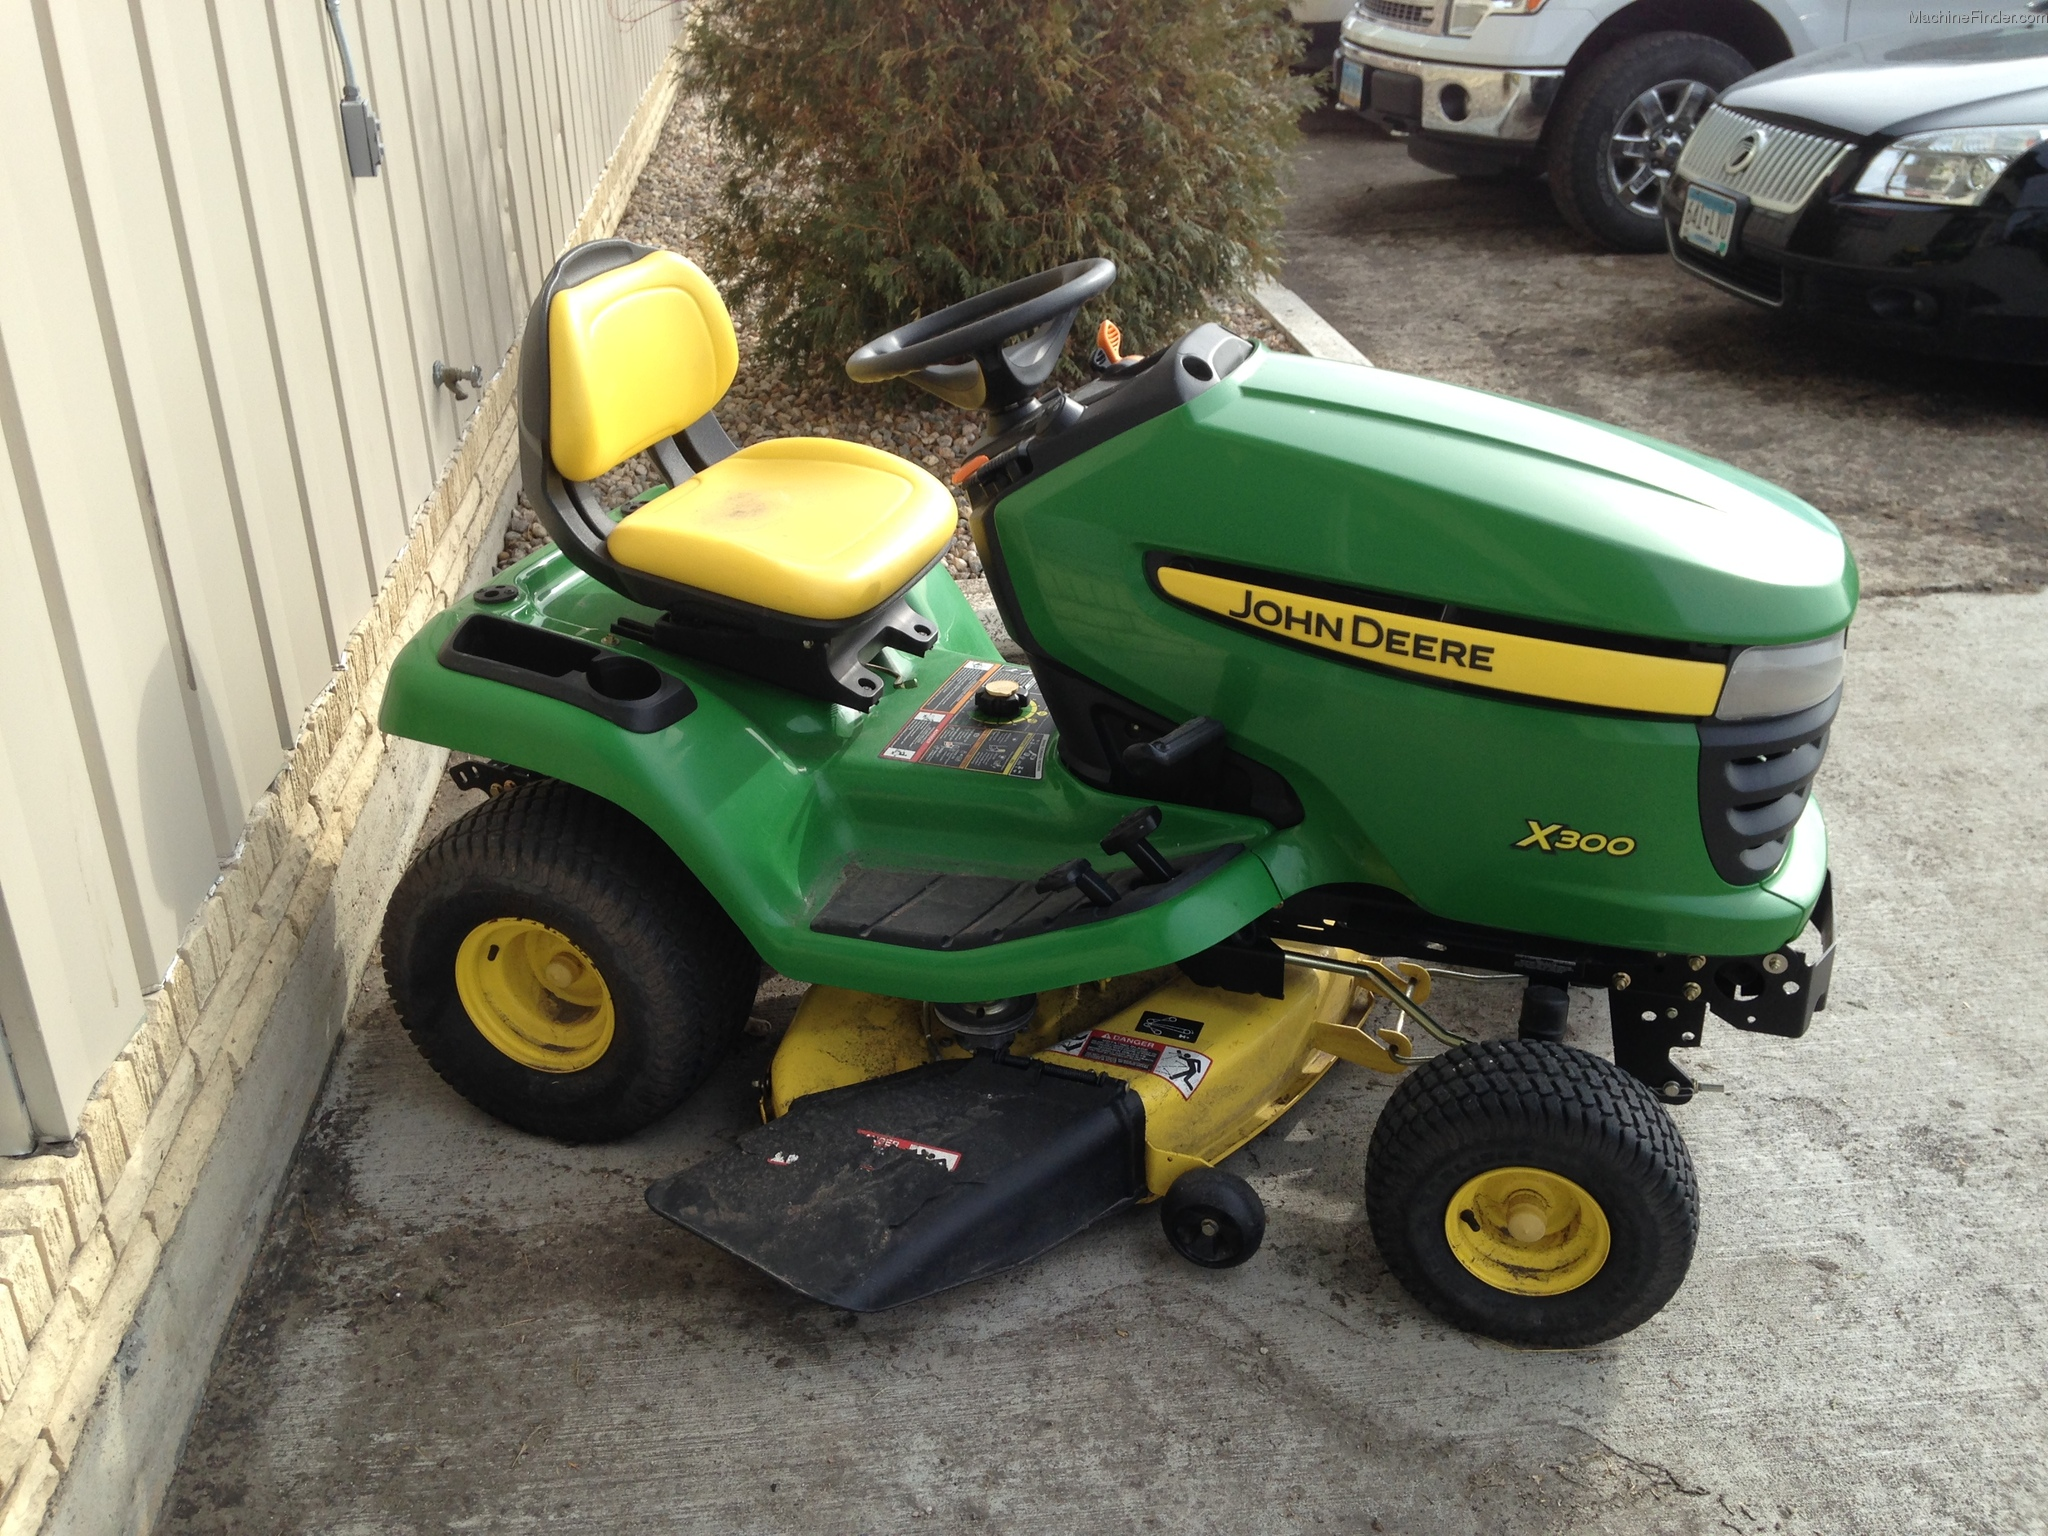 2006 john deere x300 lawn garden and commercial mowing. Black Bedroom Furniture Sets. Home Design Ideas